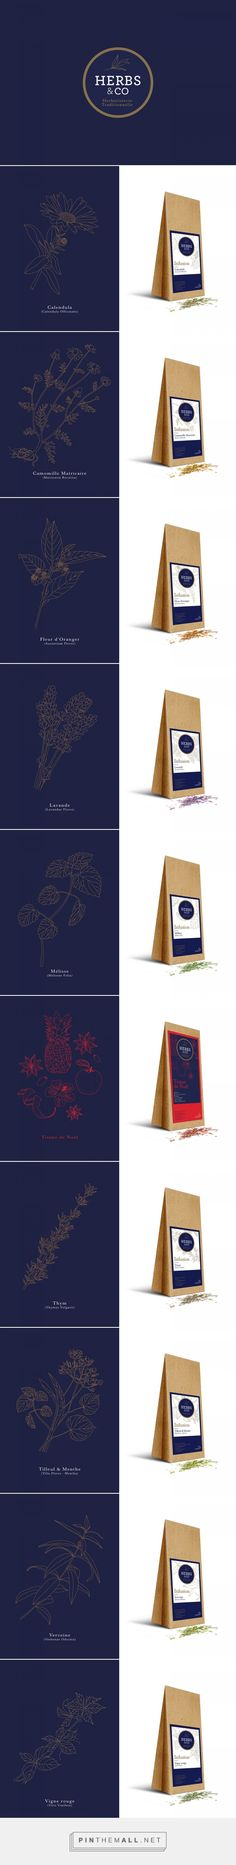 HERBS AND CO Logo Design and Packaging by Julien Hamel | Fivestar Branding Agency – Design and Branding Agency & Curated Inspiration Gallery #designinspiration #branding #logodesign #fivestarbrandingagency